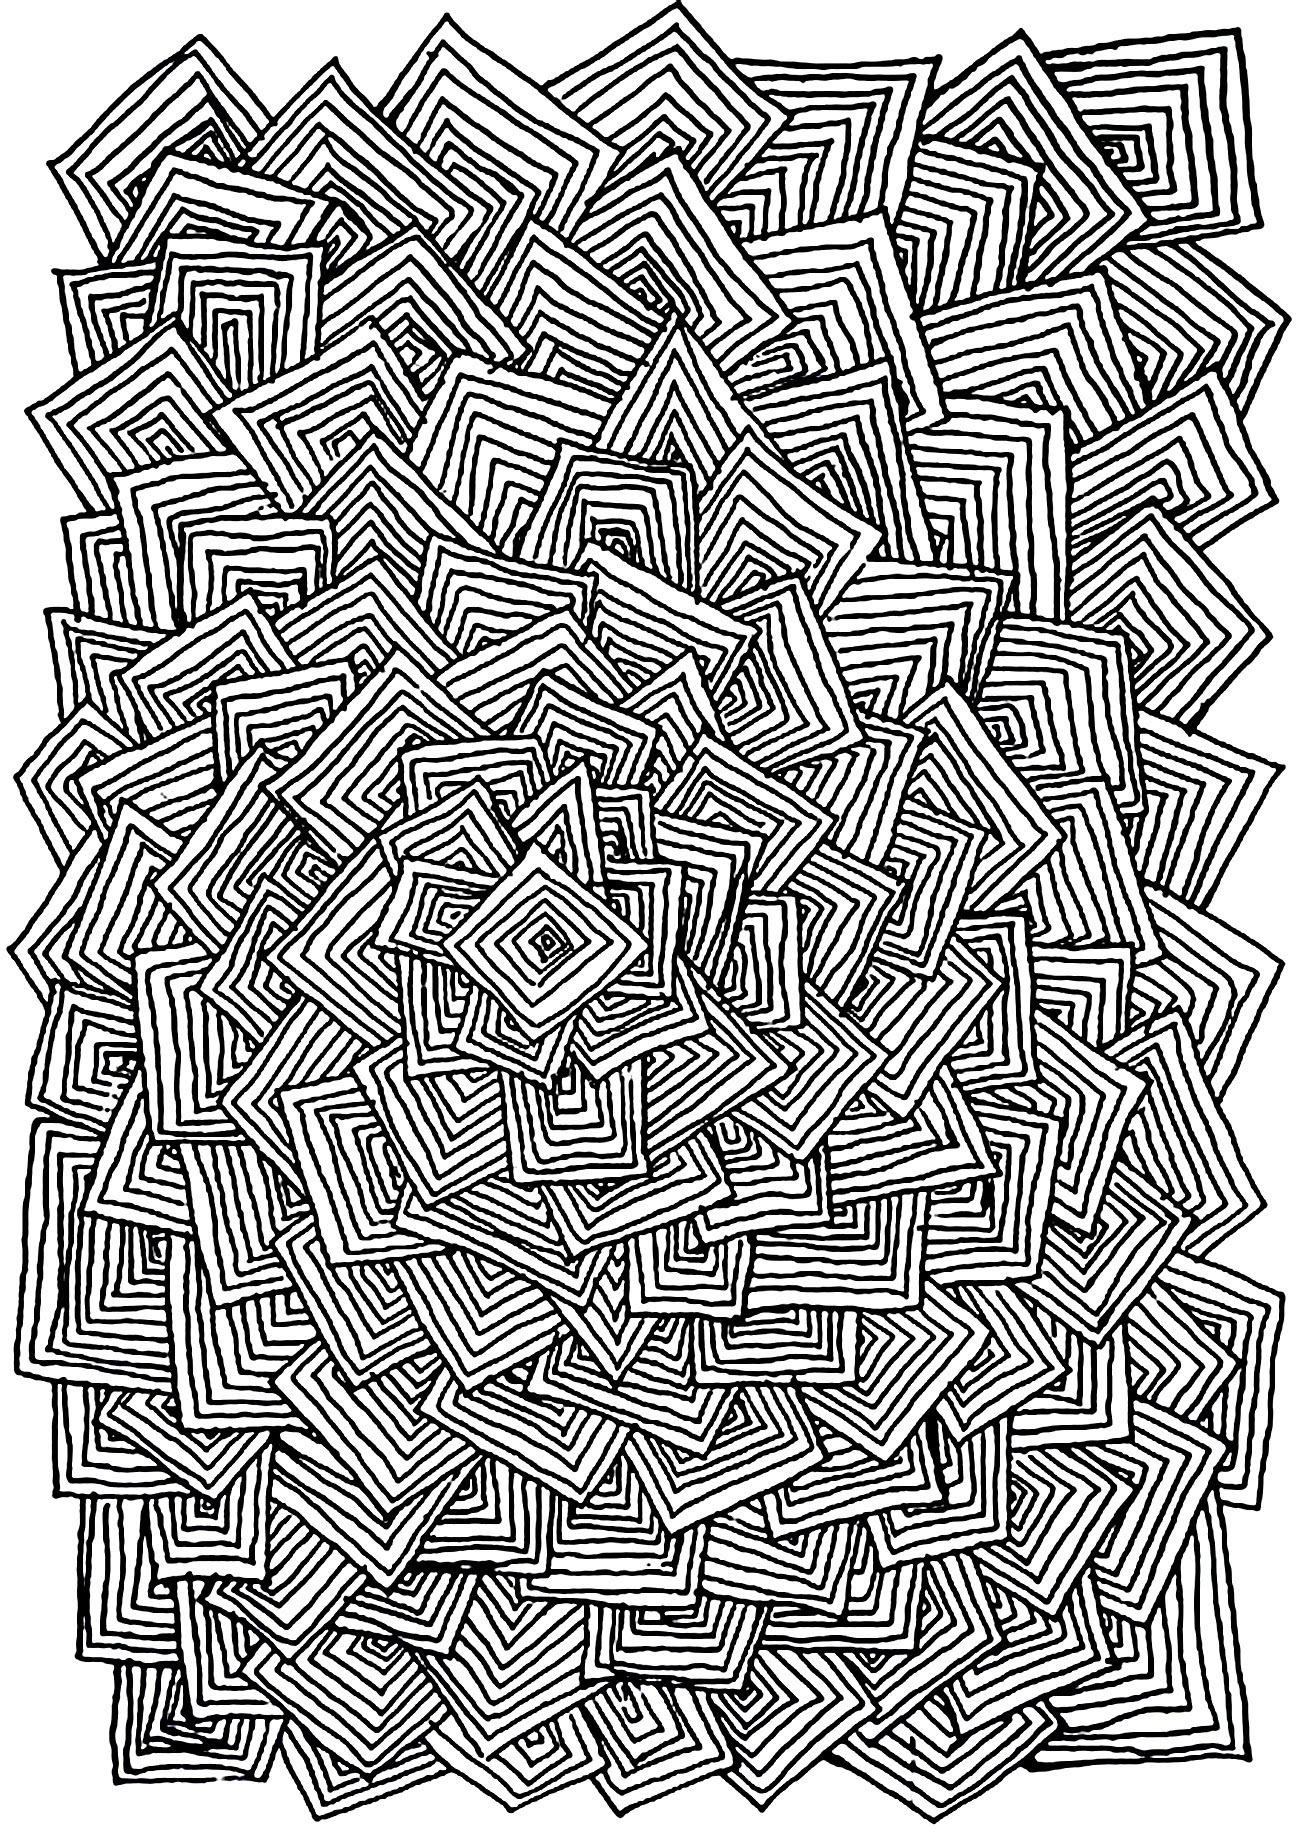 Relax squares - Anti stress Adult Coloring Pages - Page 2/